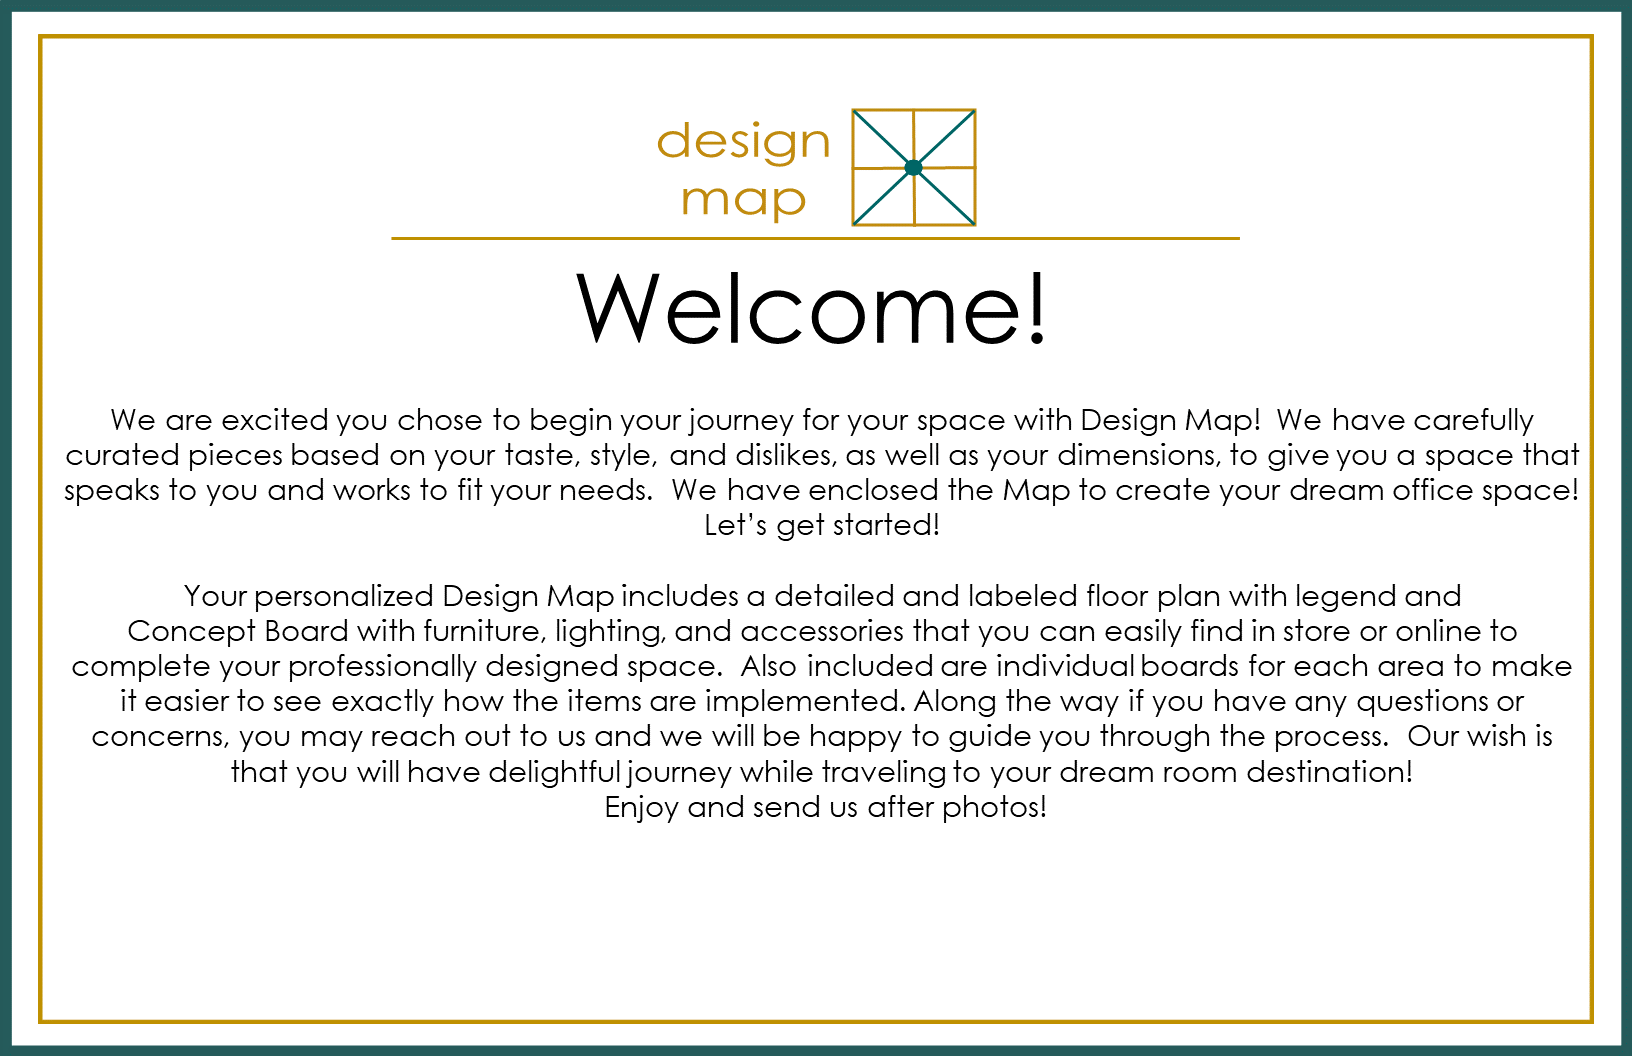 DESIGN MAP WELCOME